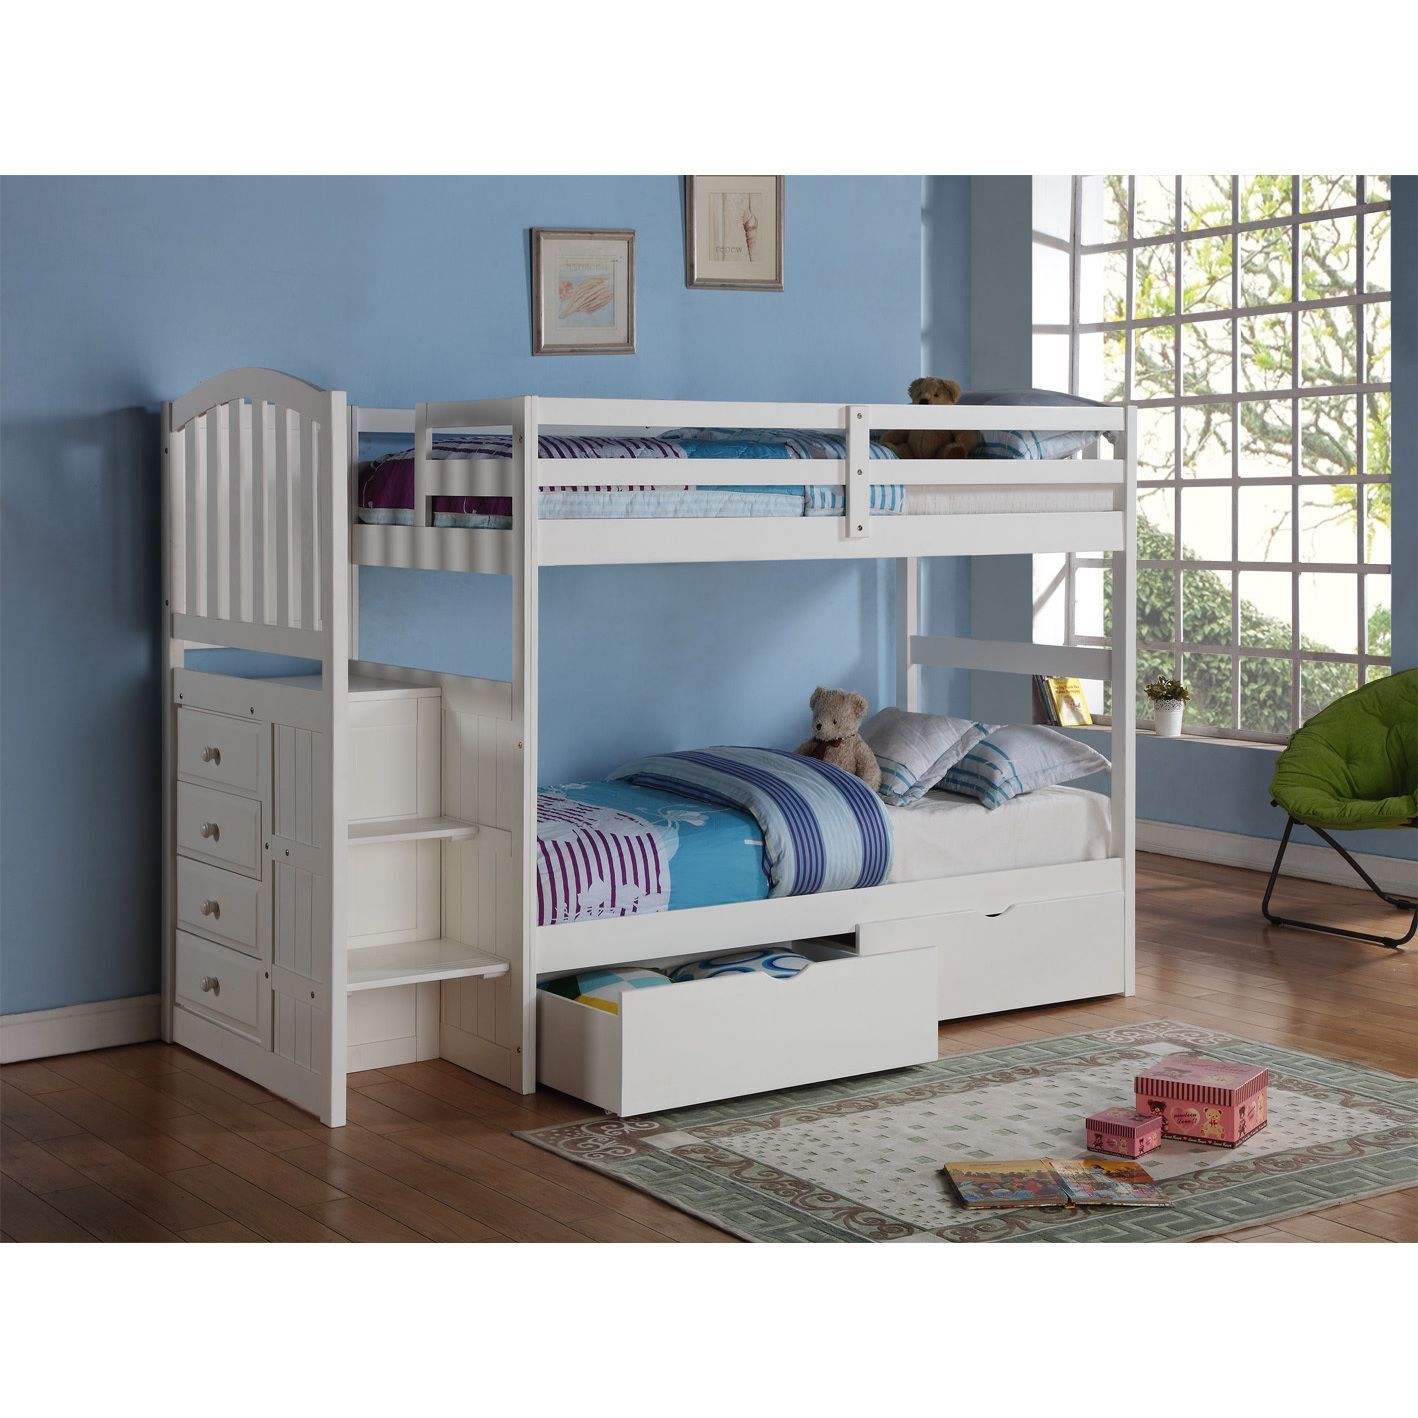 Donco Kids Arch Mission Stairway White Twin Bunk Bed With Underbed